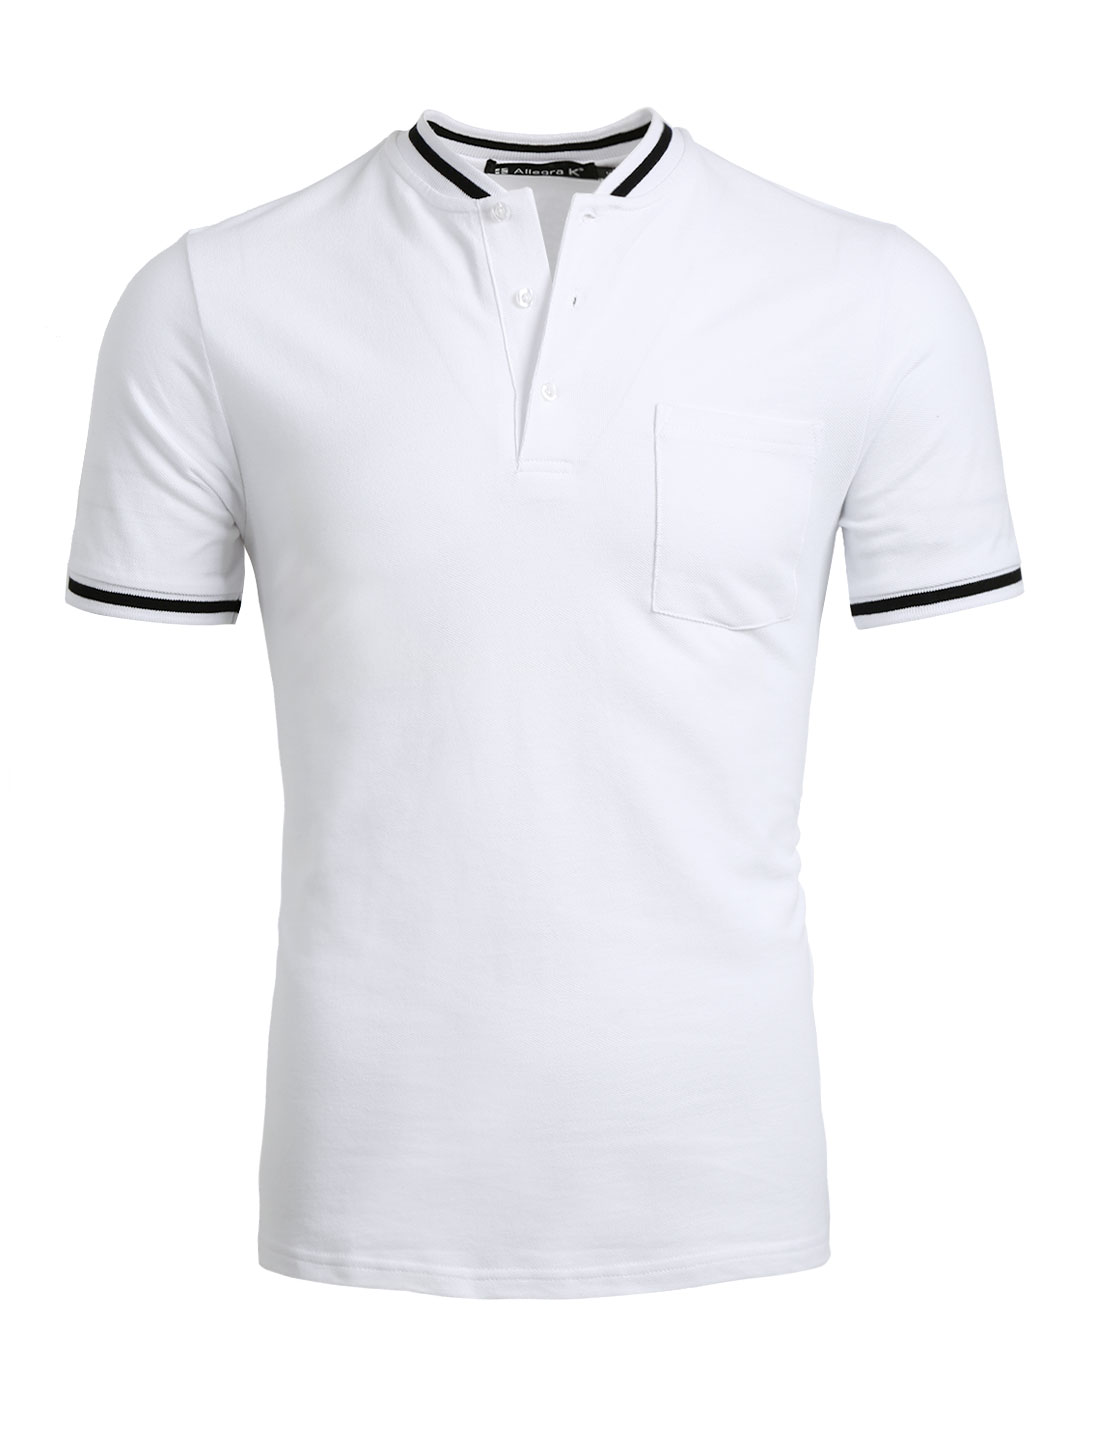 Men Half Placket Buttoned Chest Pocket Short Sleeves Tee White S